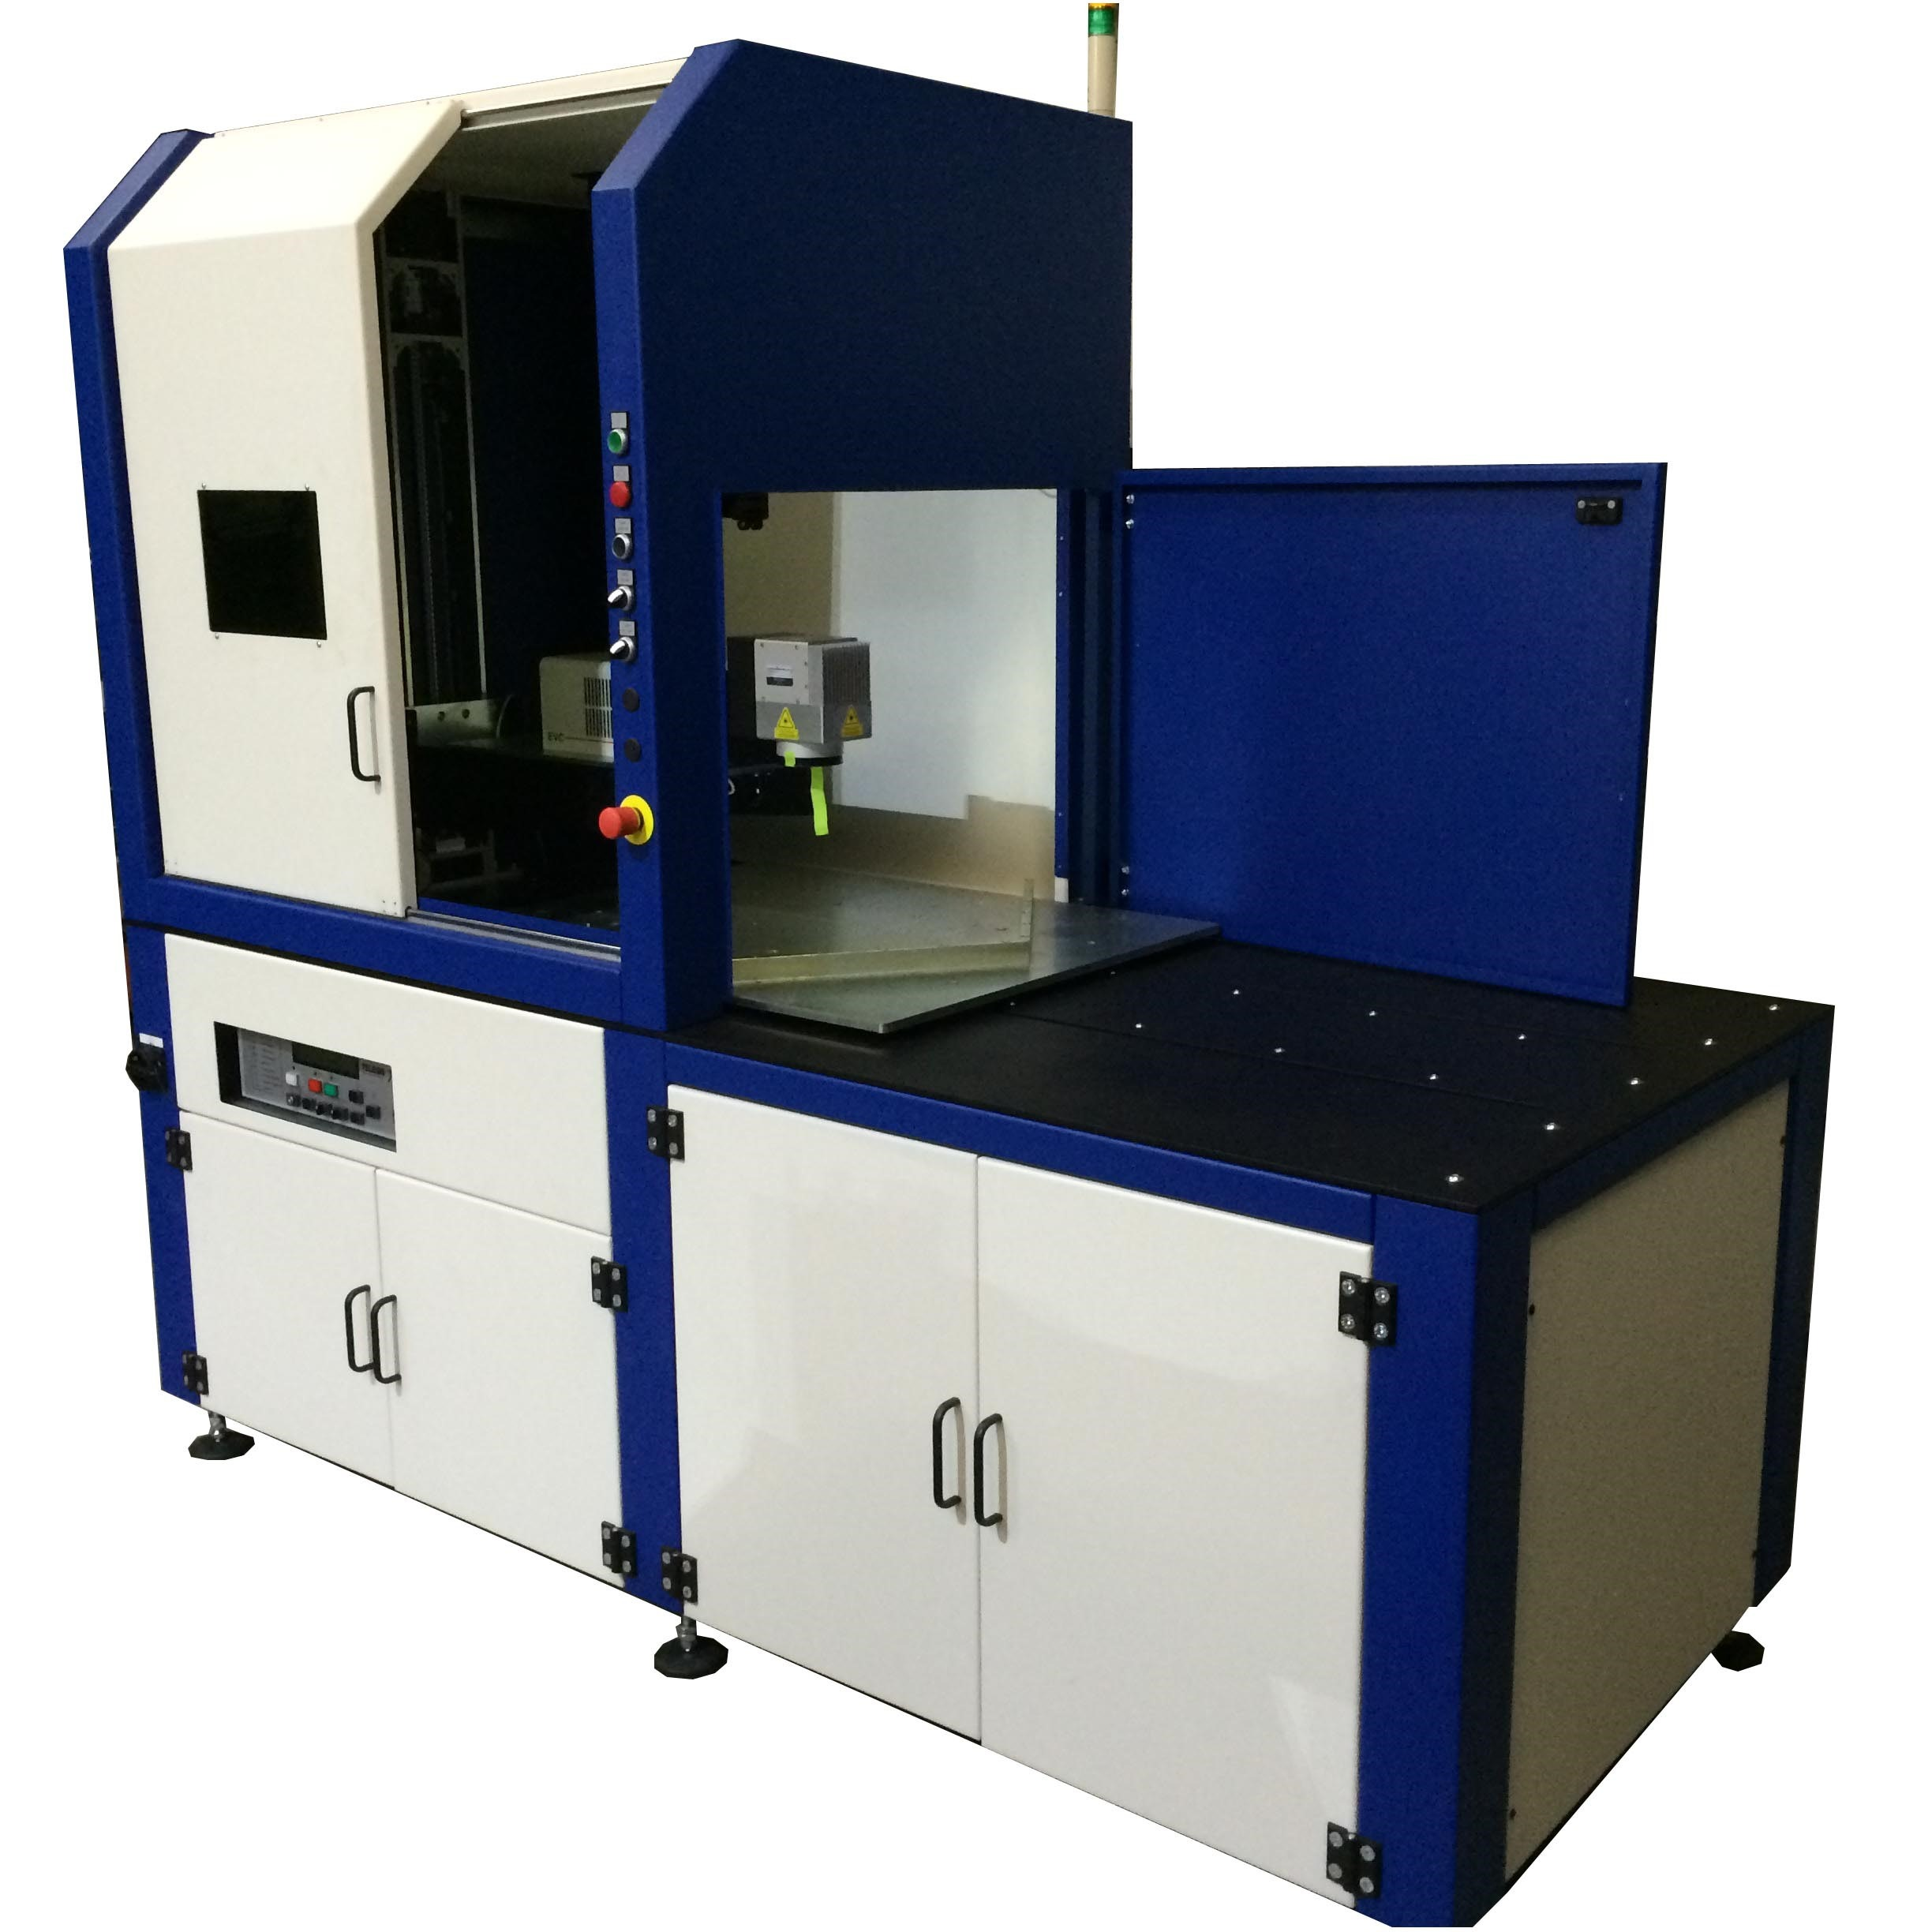 Standalone Laser Cabinet X- And Z-axis